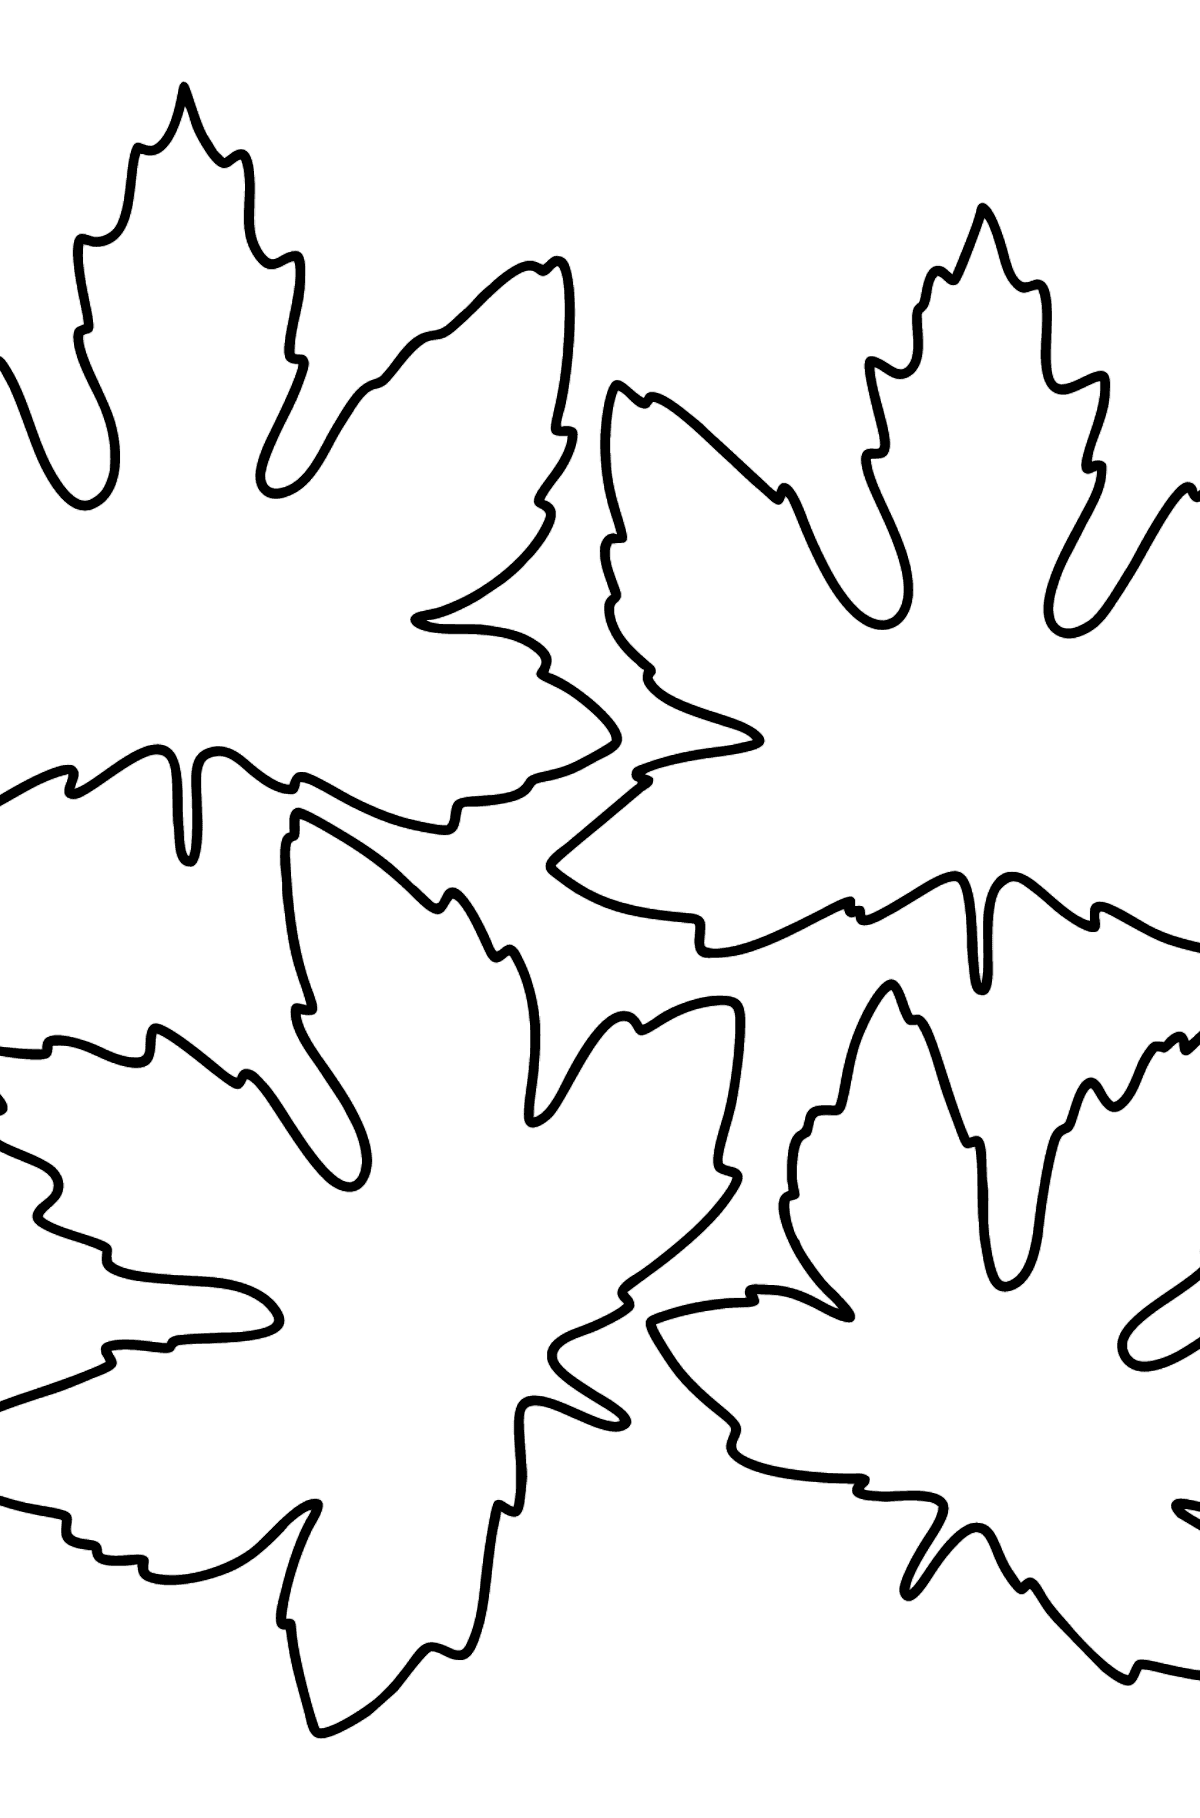 Maple Leaves coloring page - Coloring Pages for Kids